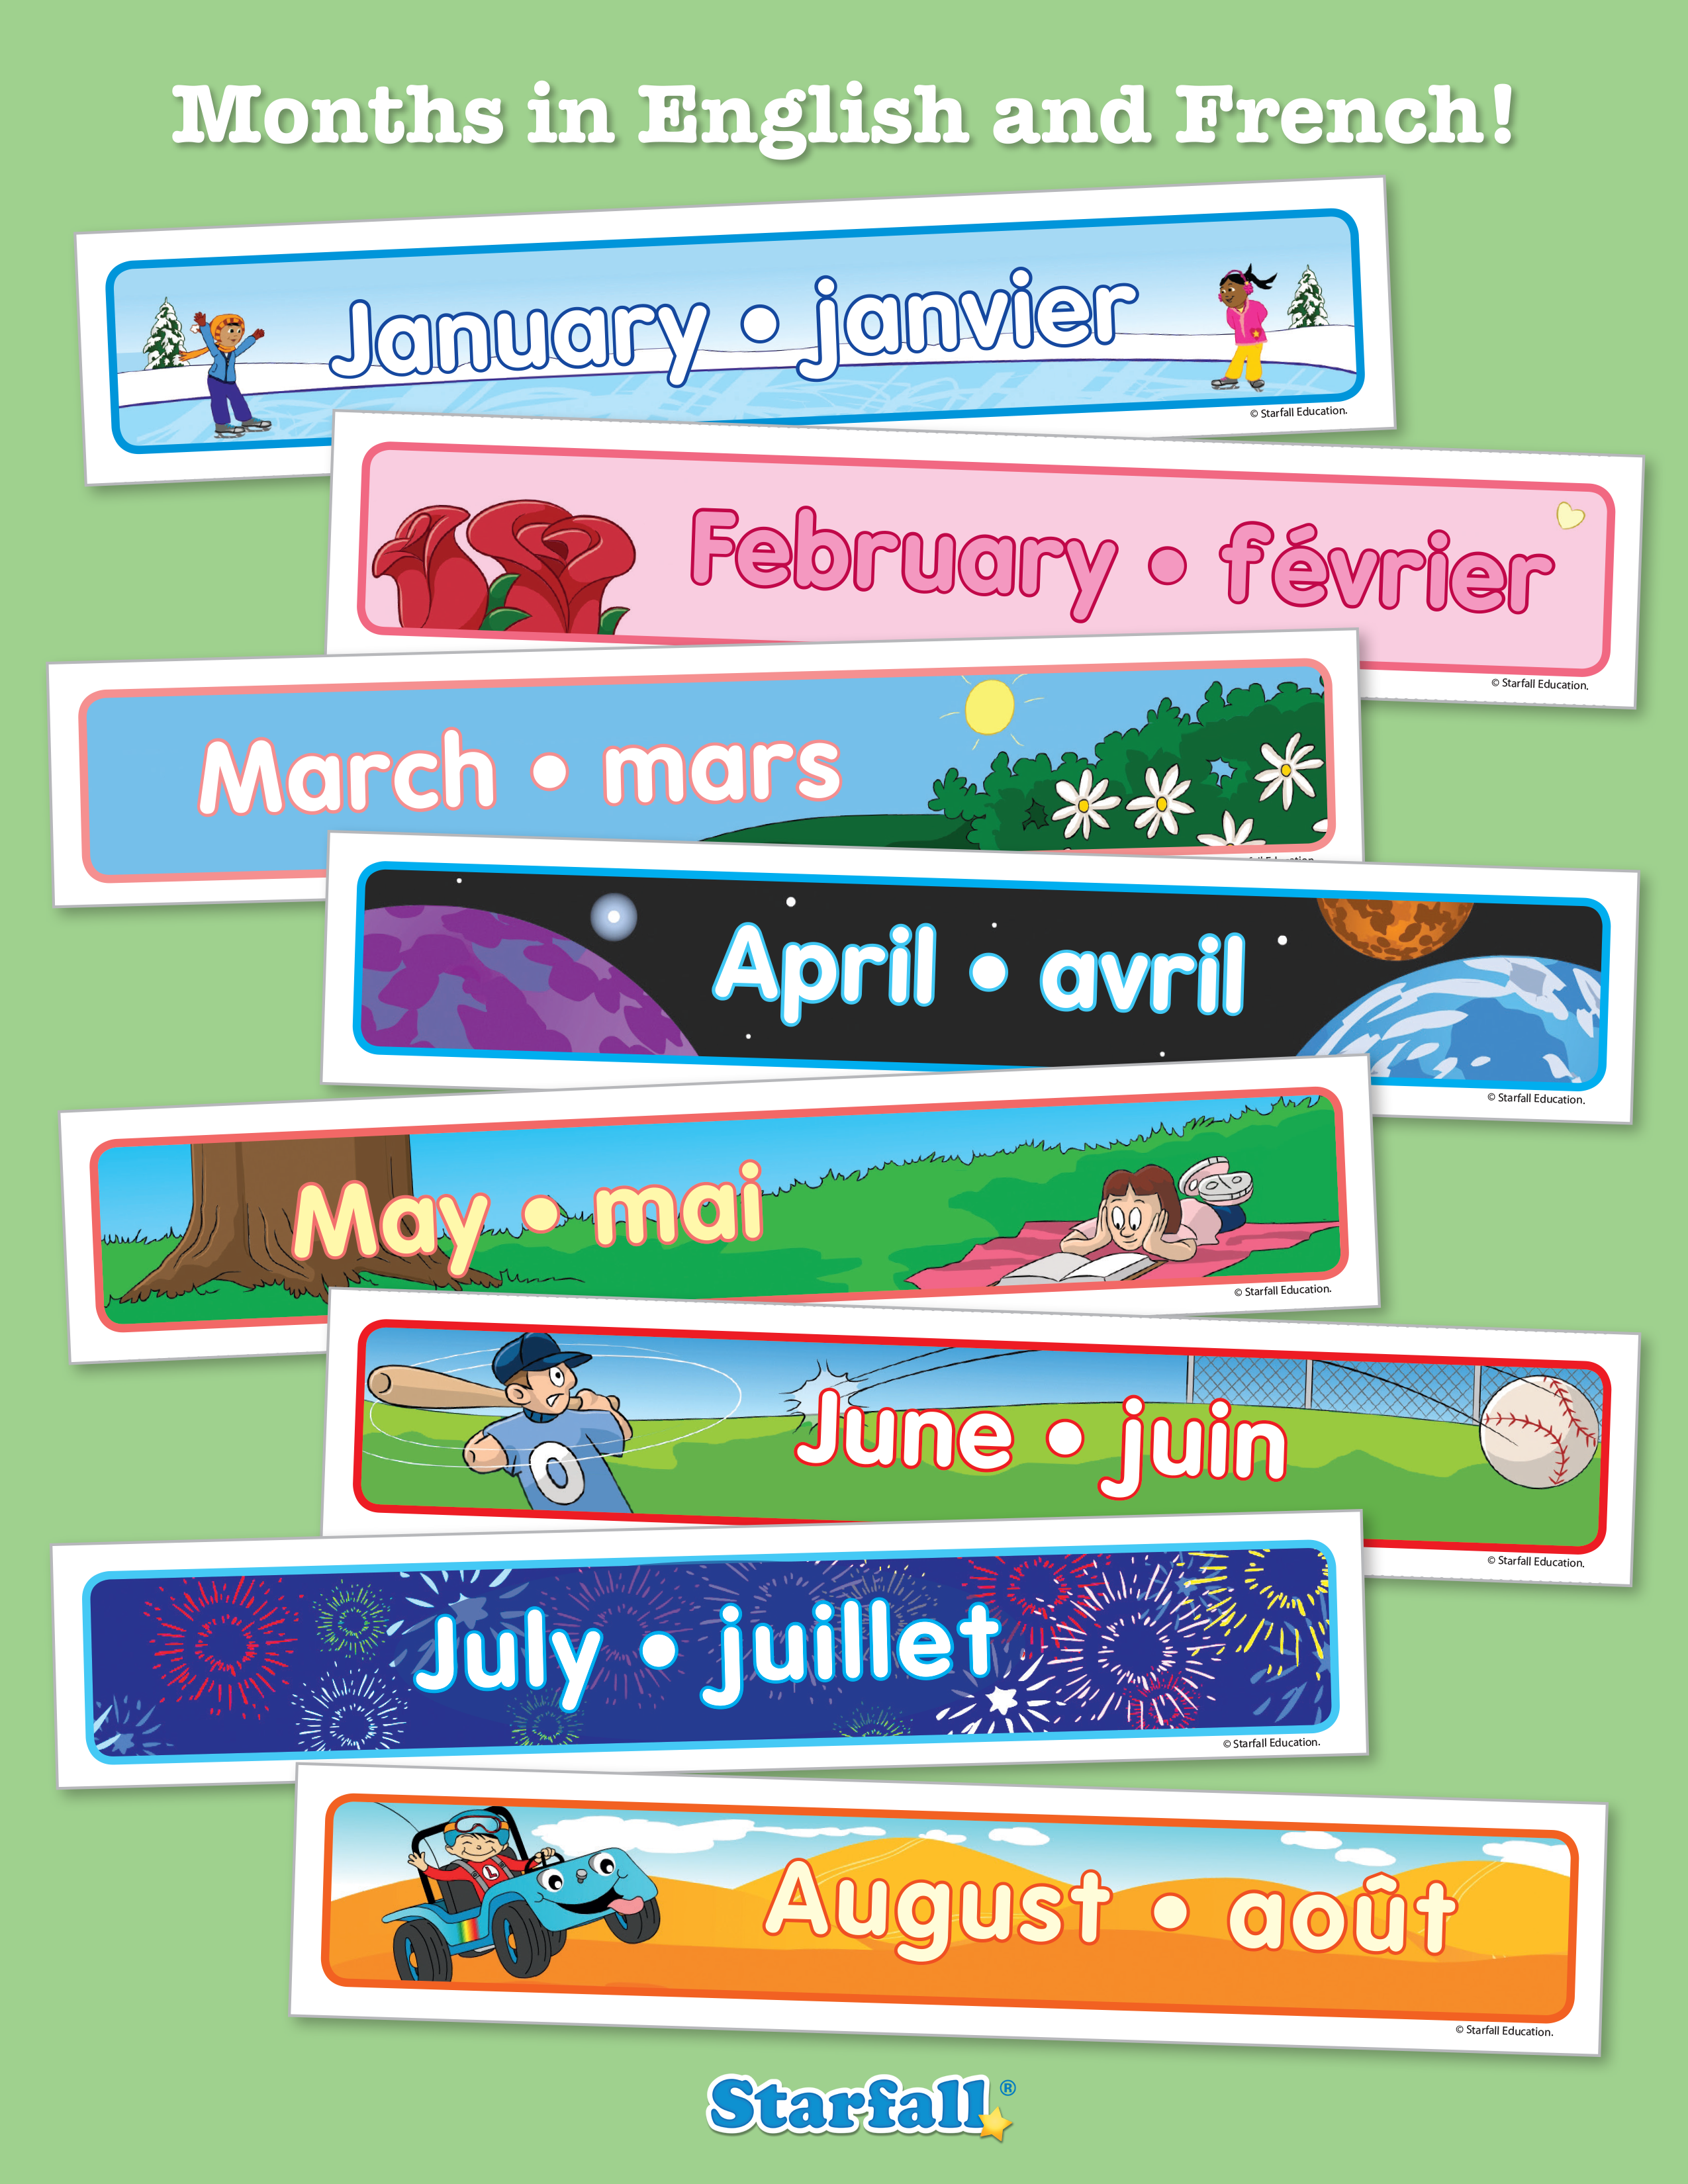 Starfall Has Downloadable Cards Of The 12 Months In